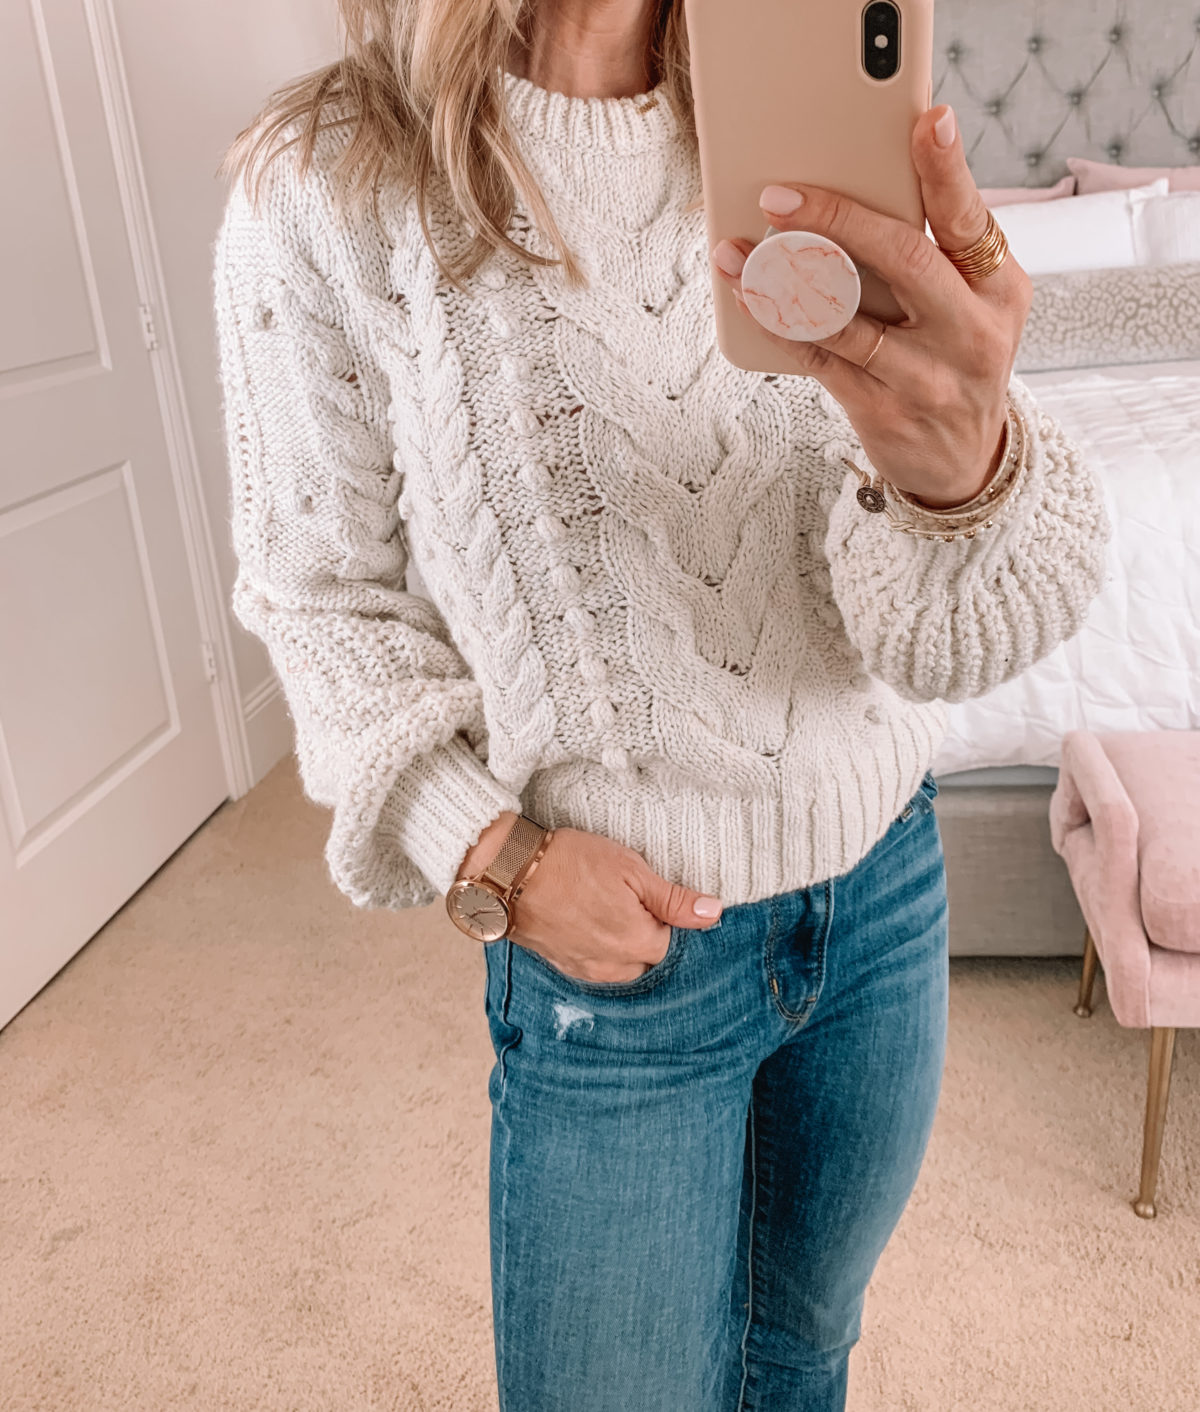 Amazon Fashion Faves, Chunky Knit Sweater, Jeans, Booties